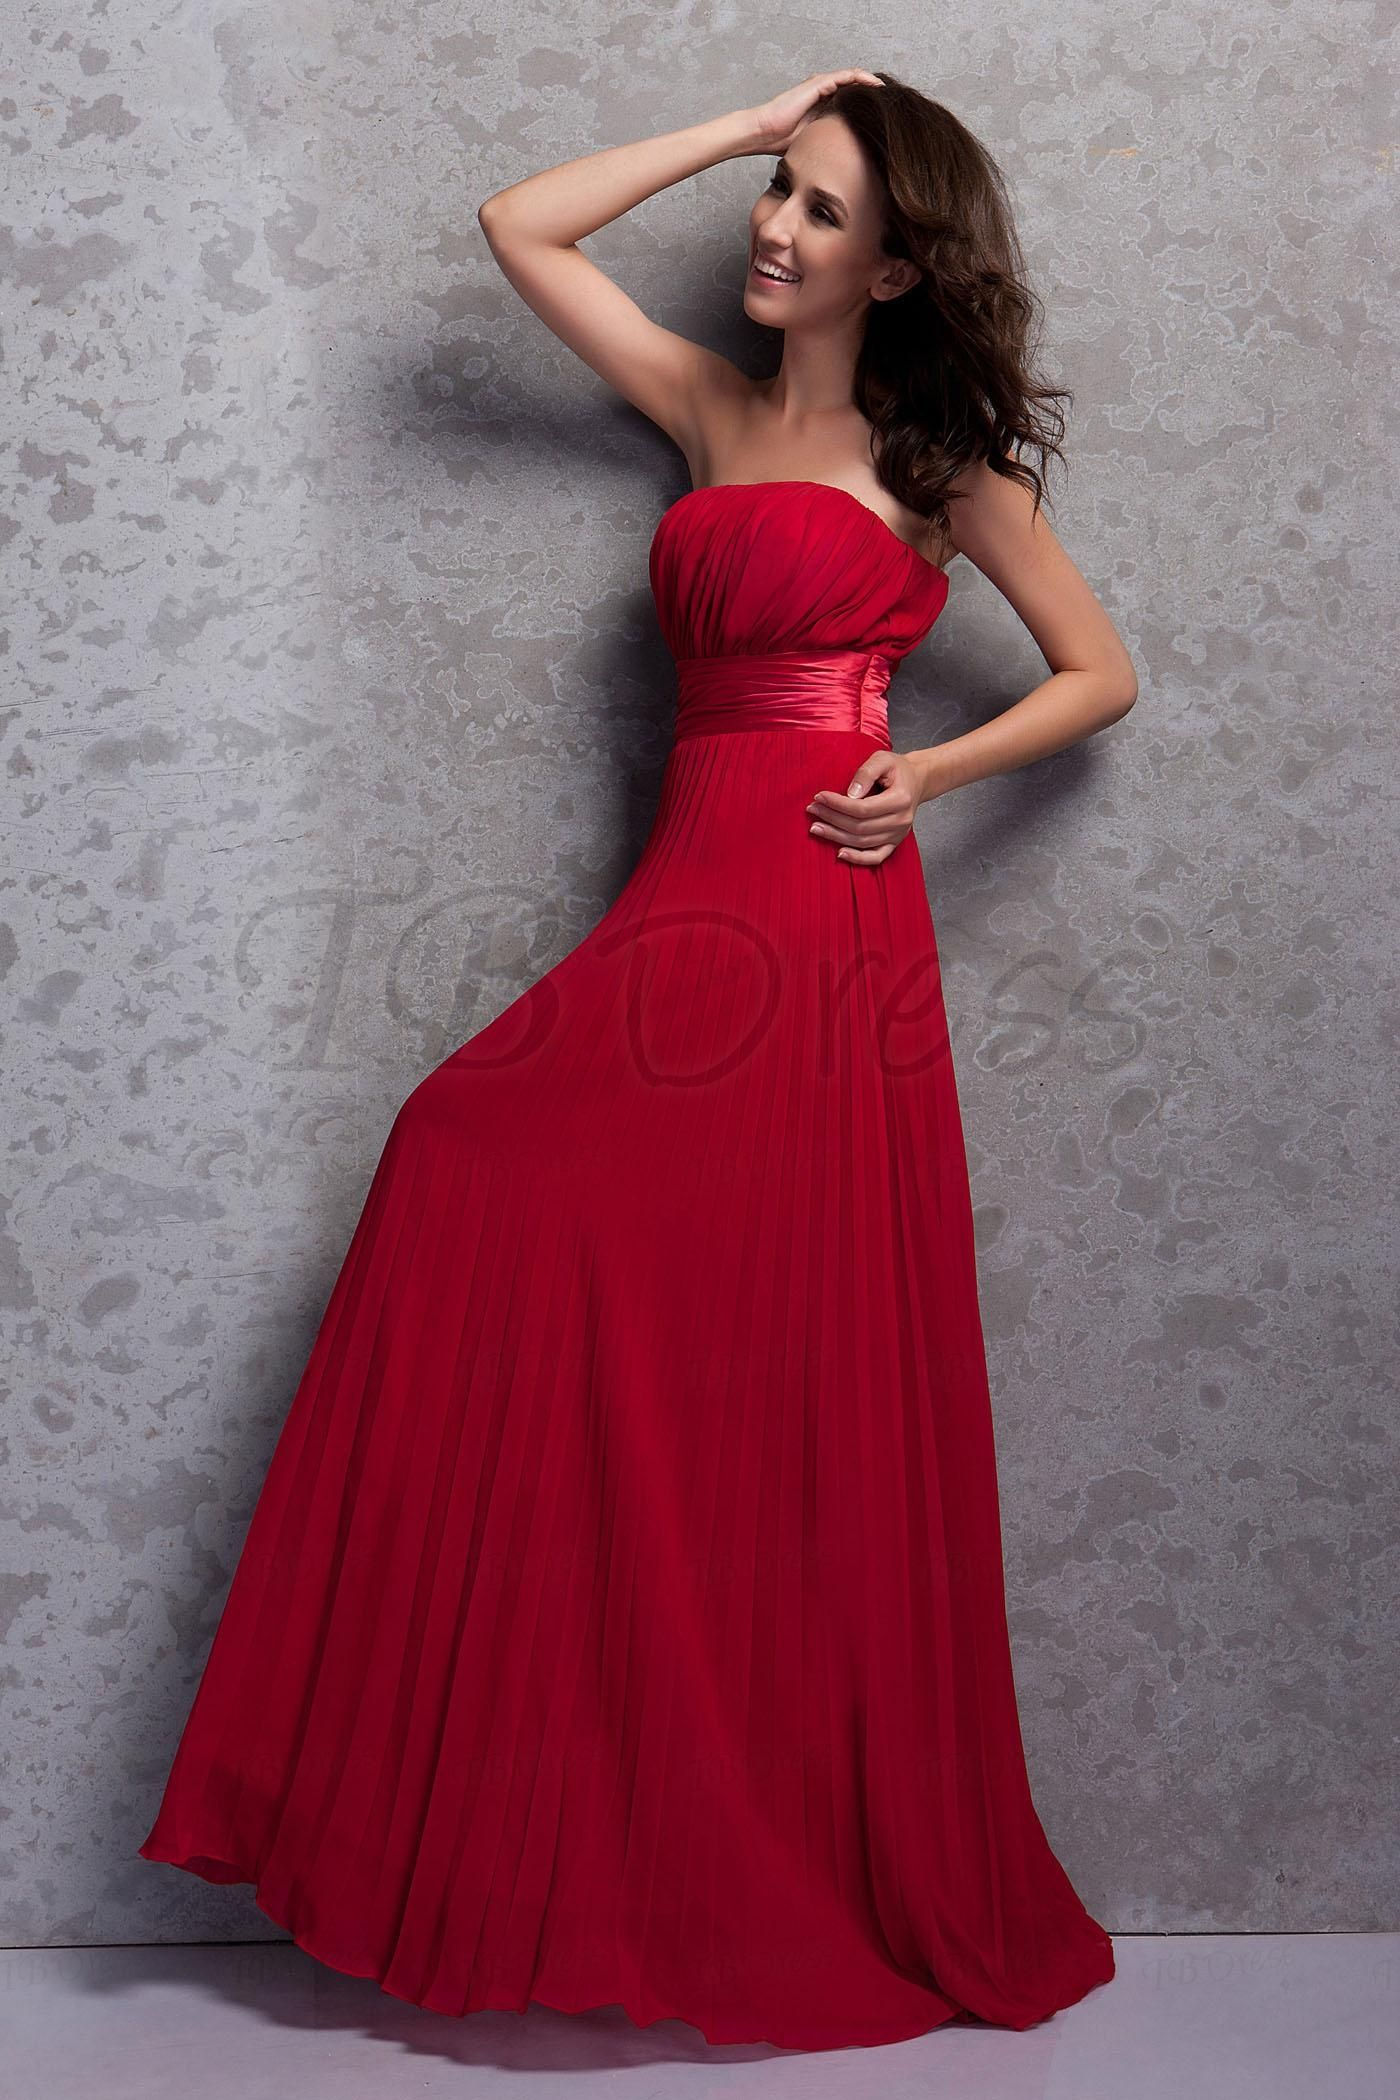 Red bridesmaid dresses canada top 300 red bridesmaid dresses red bridesmaid dresses canada ombrellifo Images